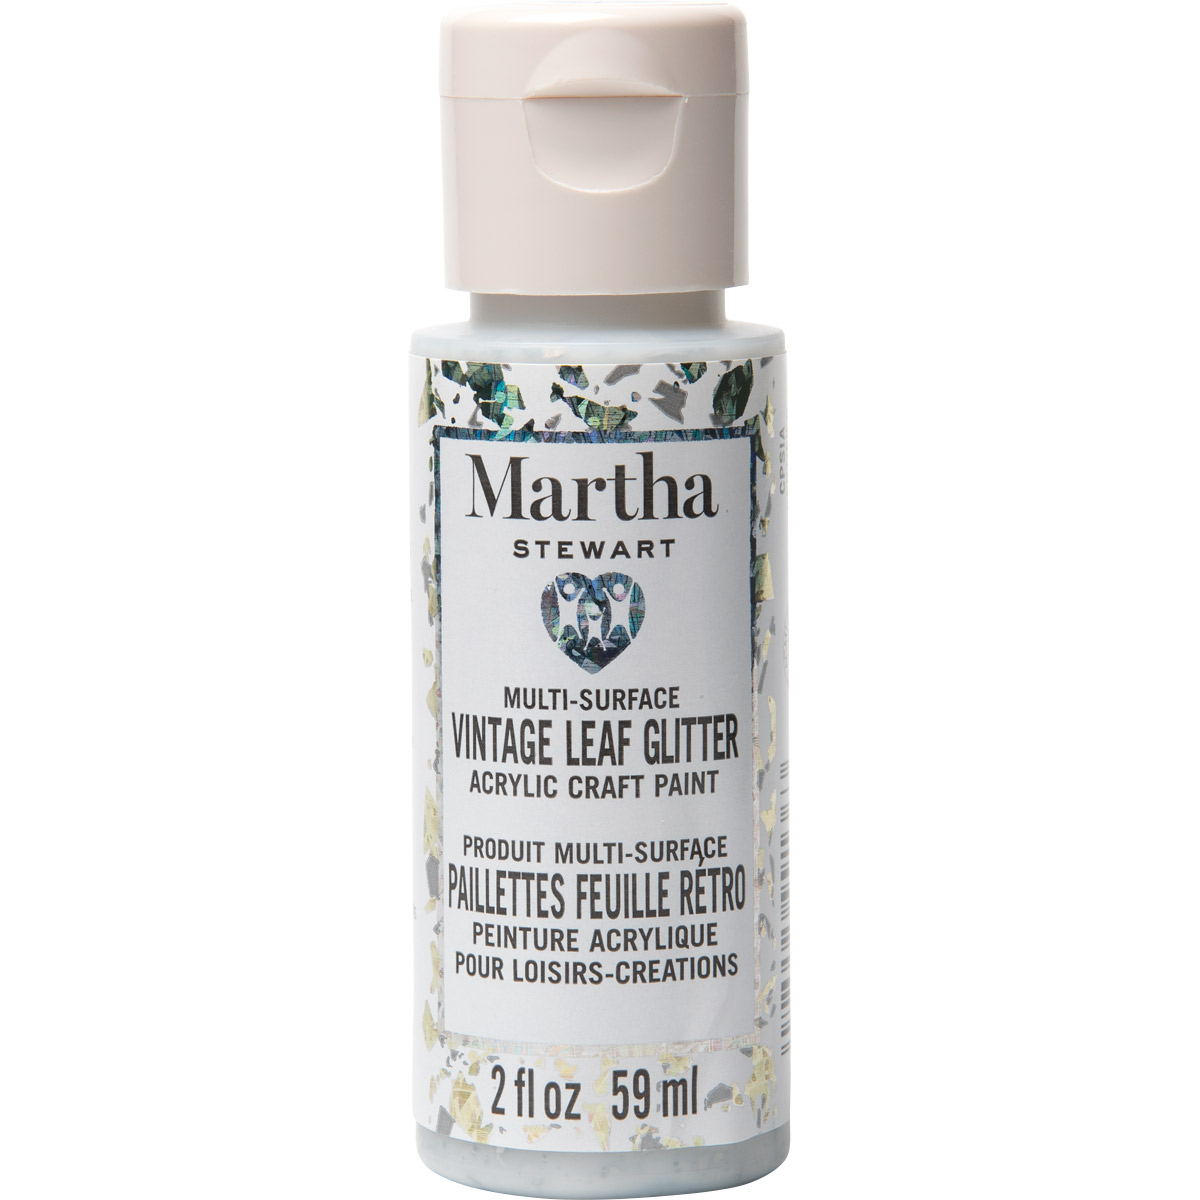 Martha Stewart® 2oz Multi-Surface Vintage Leaf Glitter Acrylic Craft Paint - Iridescent Silver